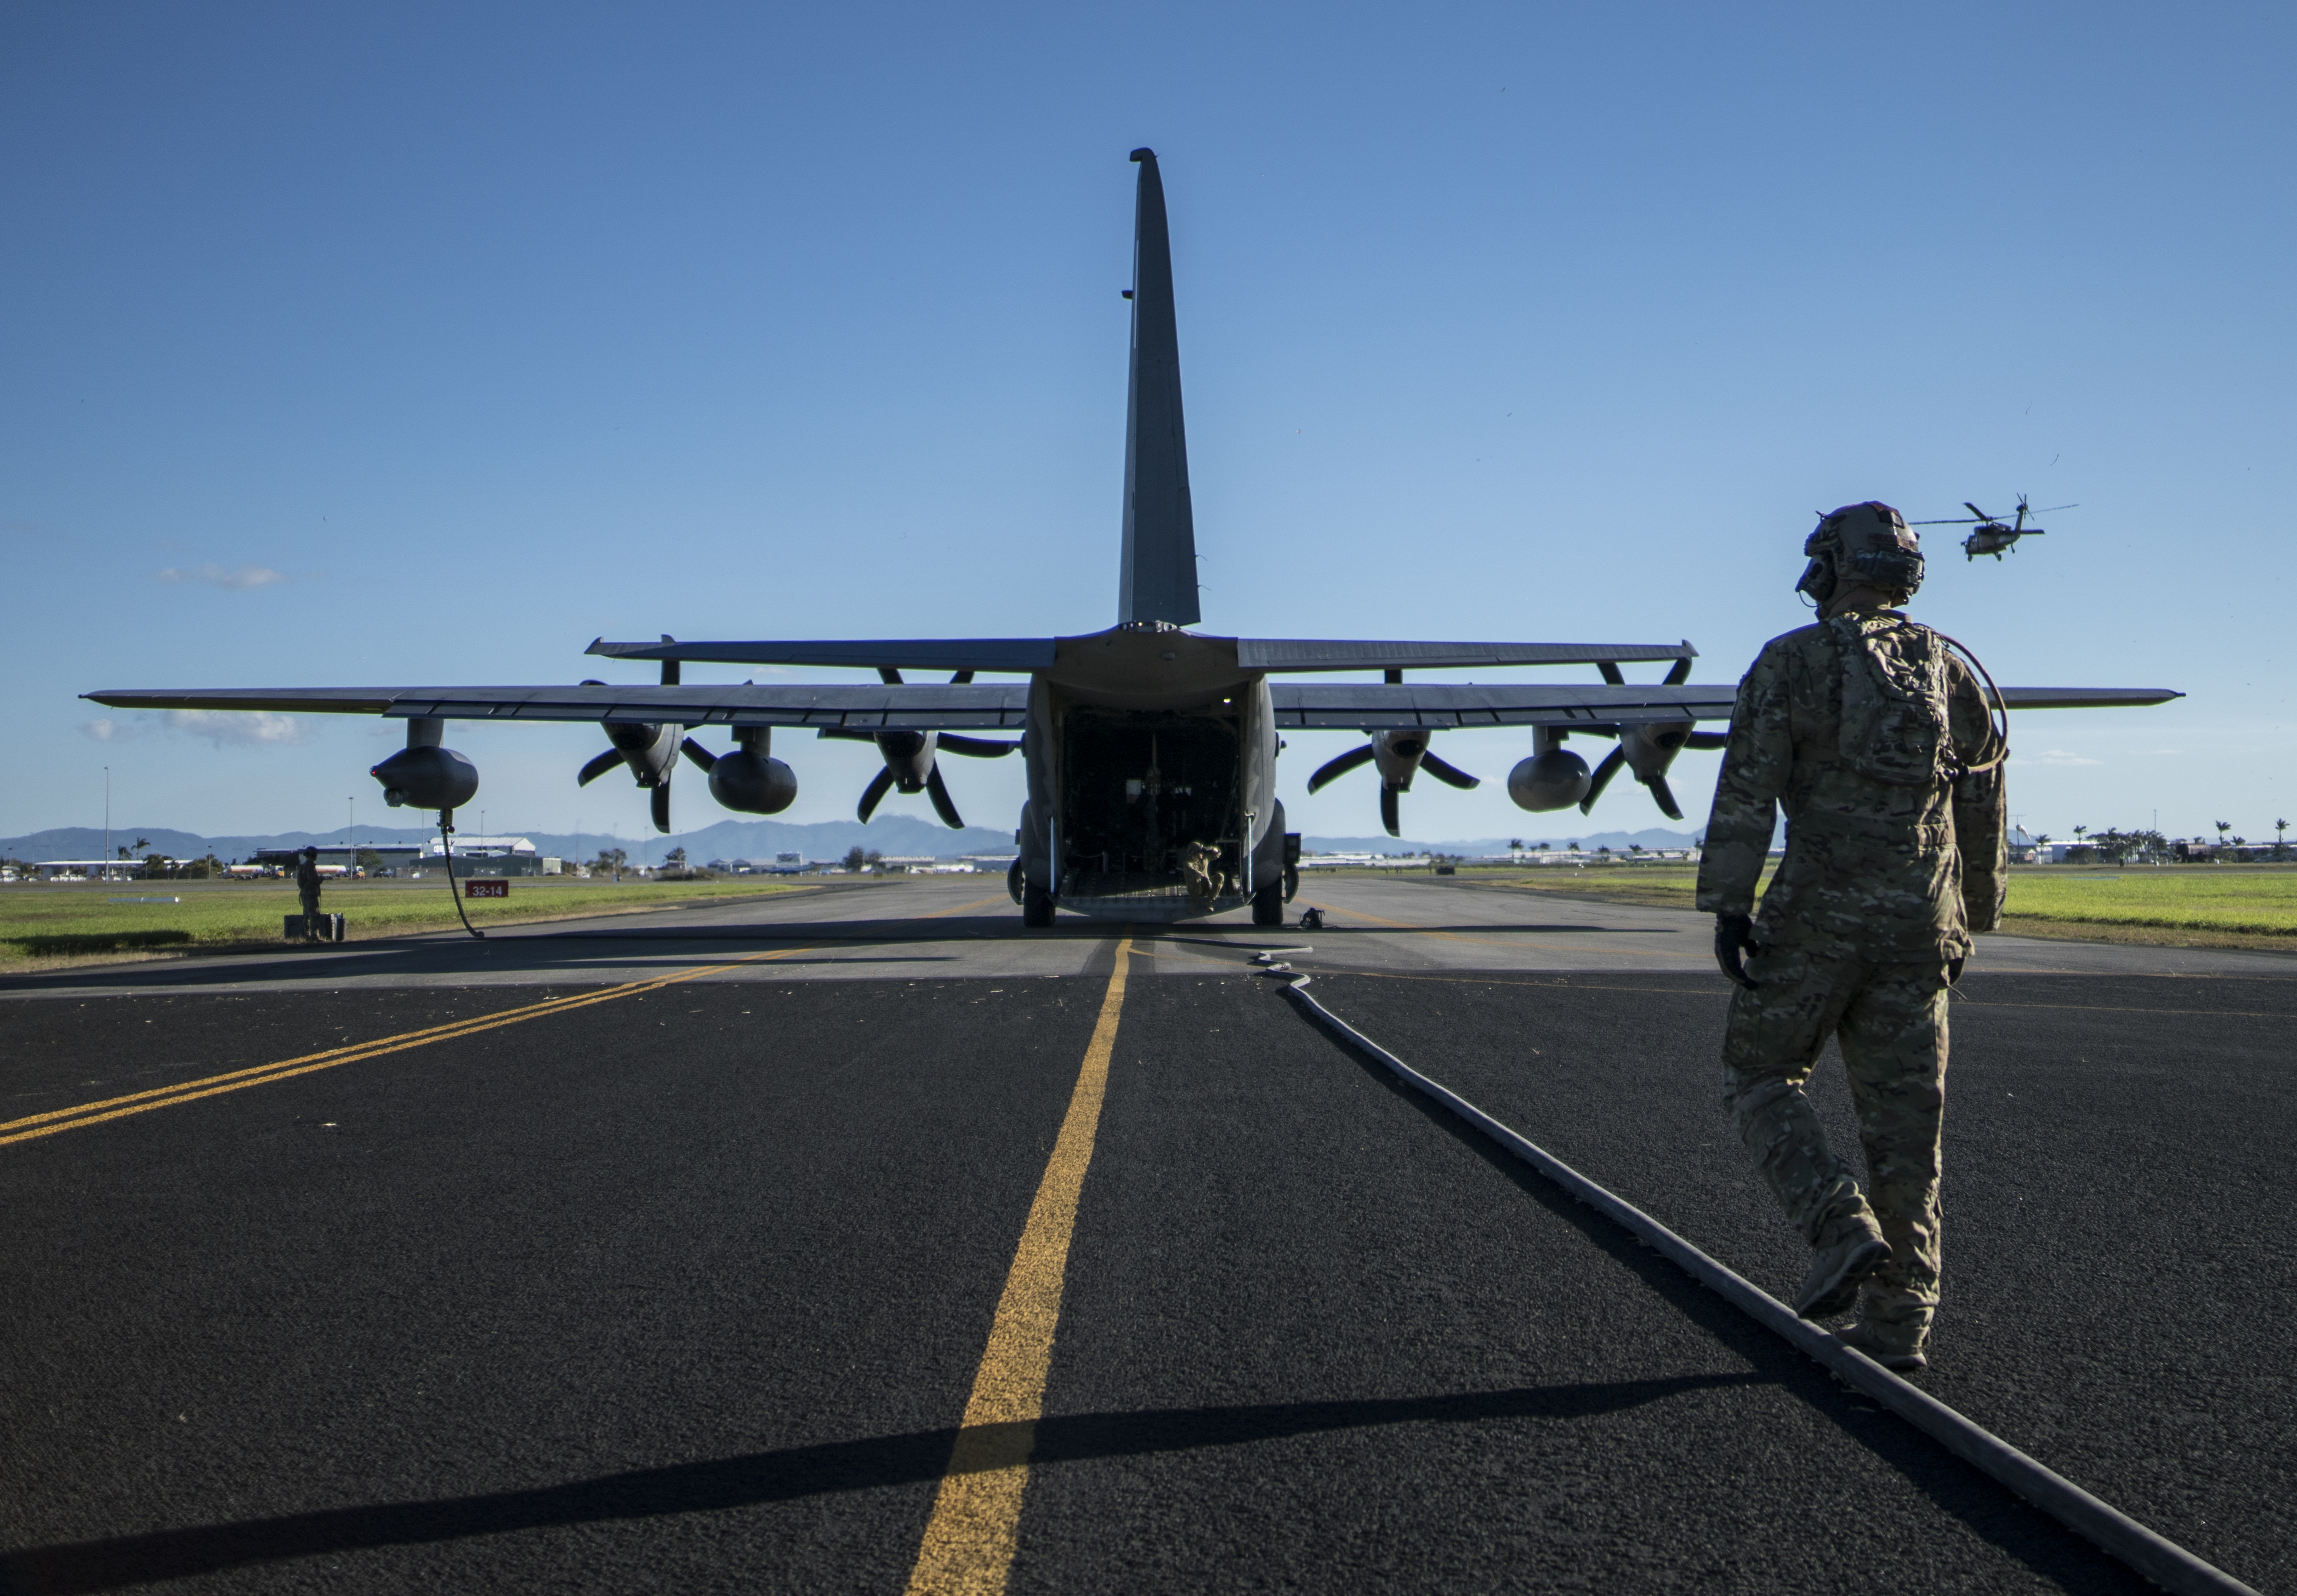 U.S. Air Force Tech. Sgt. Kade Bollinger follows the refueling hose back to the U.S. Air Force MC-130J Commando II following the forward air refueling point operations with five HH-60 Blackhawks from the 6th Aviation Assault Force July 17, 2017, at Mackay Field, Australia. (U.S. Air Force photo by Capt. Jessica Tait)